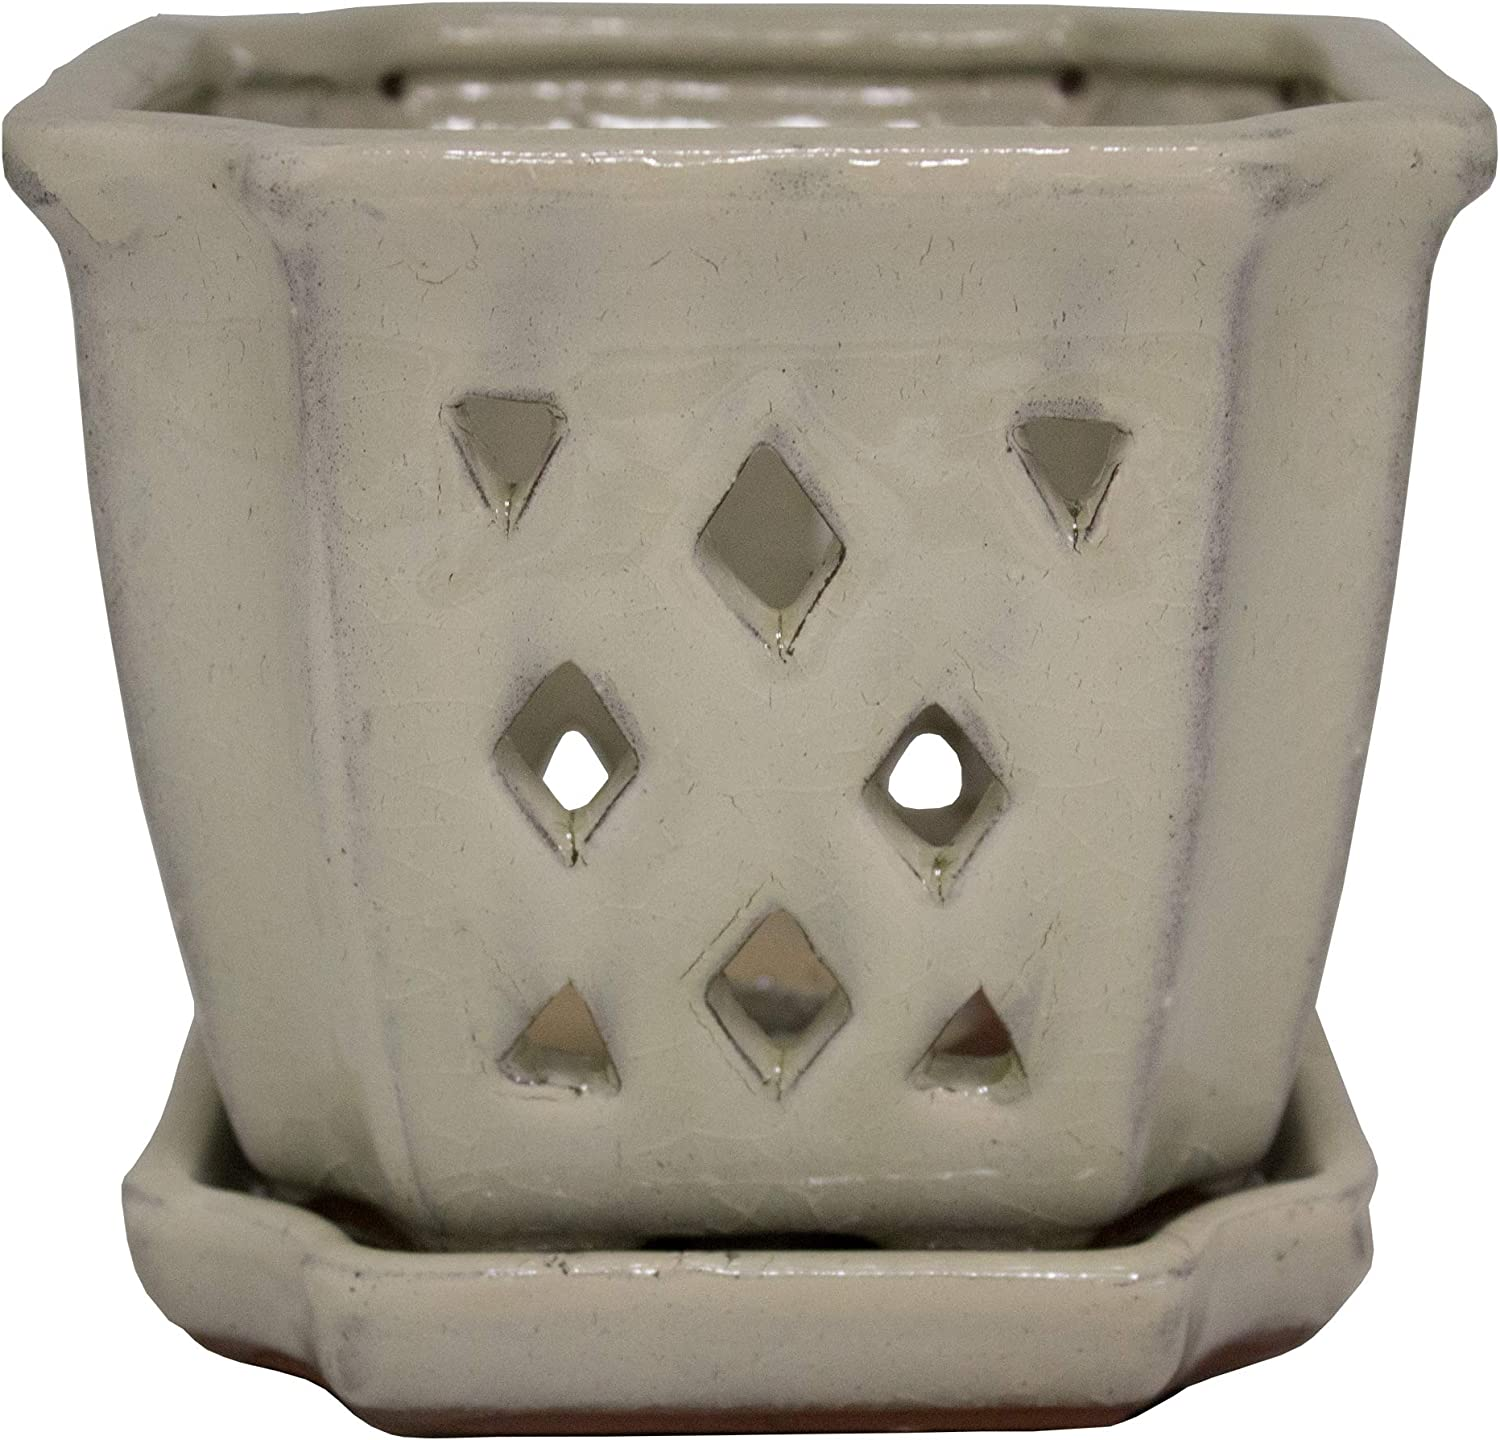 Crackle White Indoor Planter 5 inch TRENDSPOT 5IN Orchid Pot Square